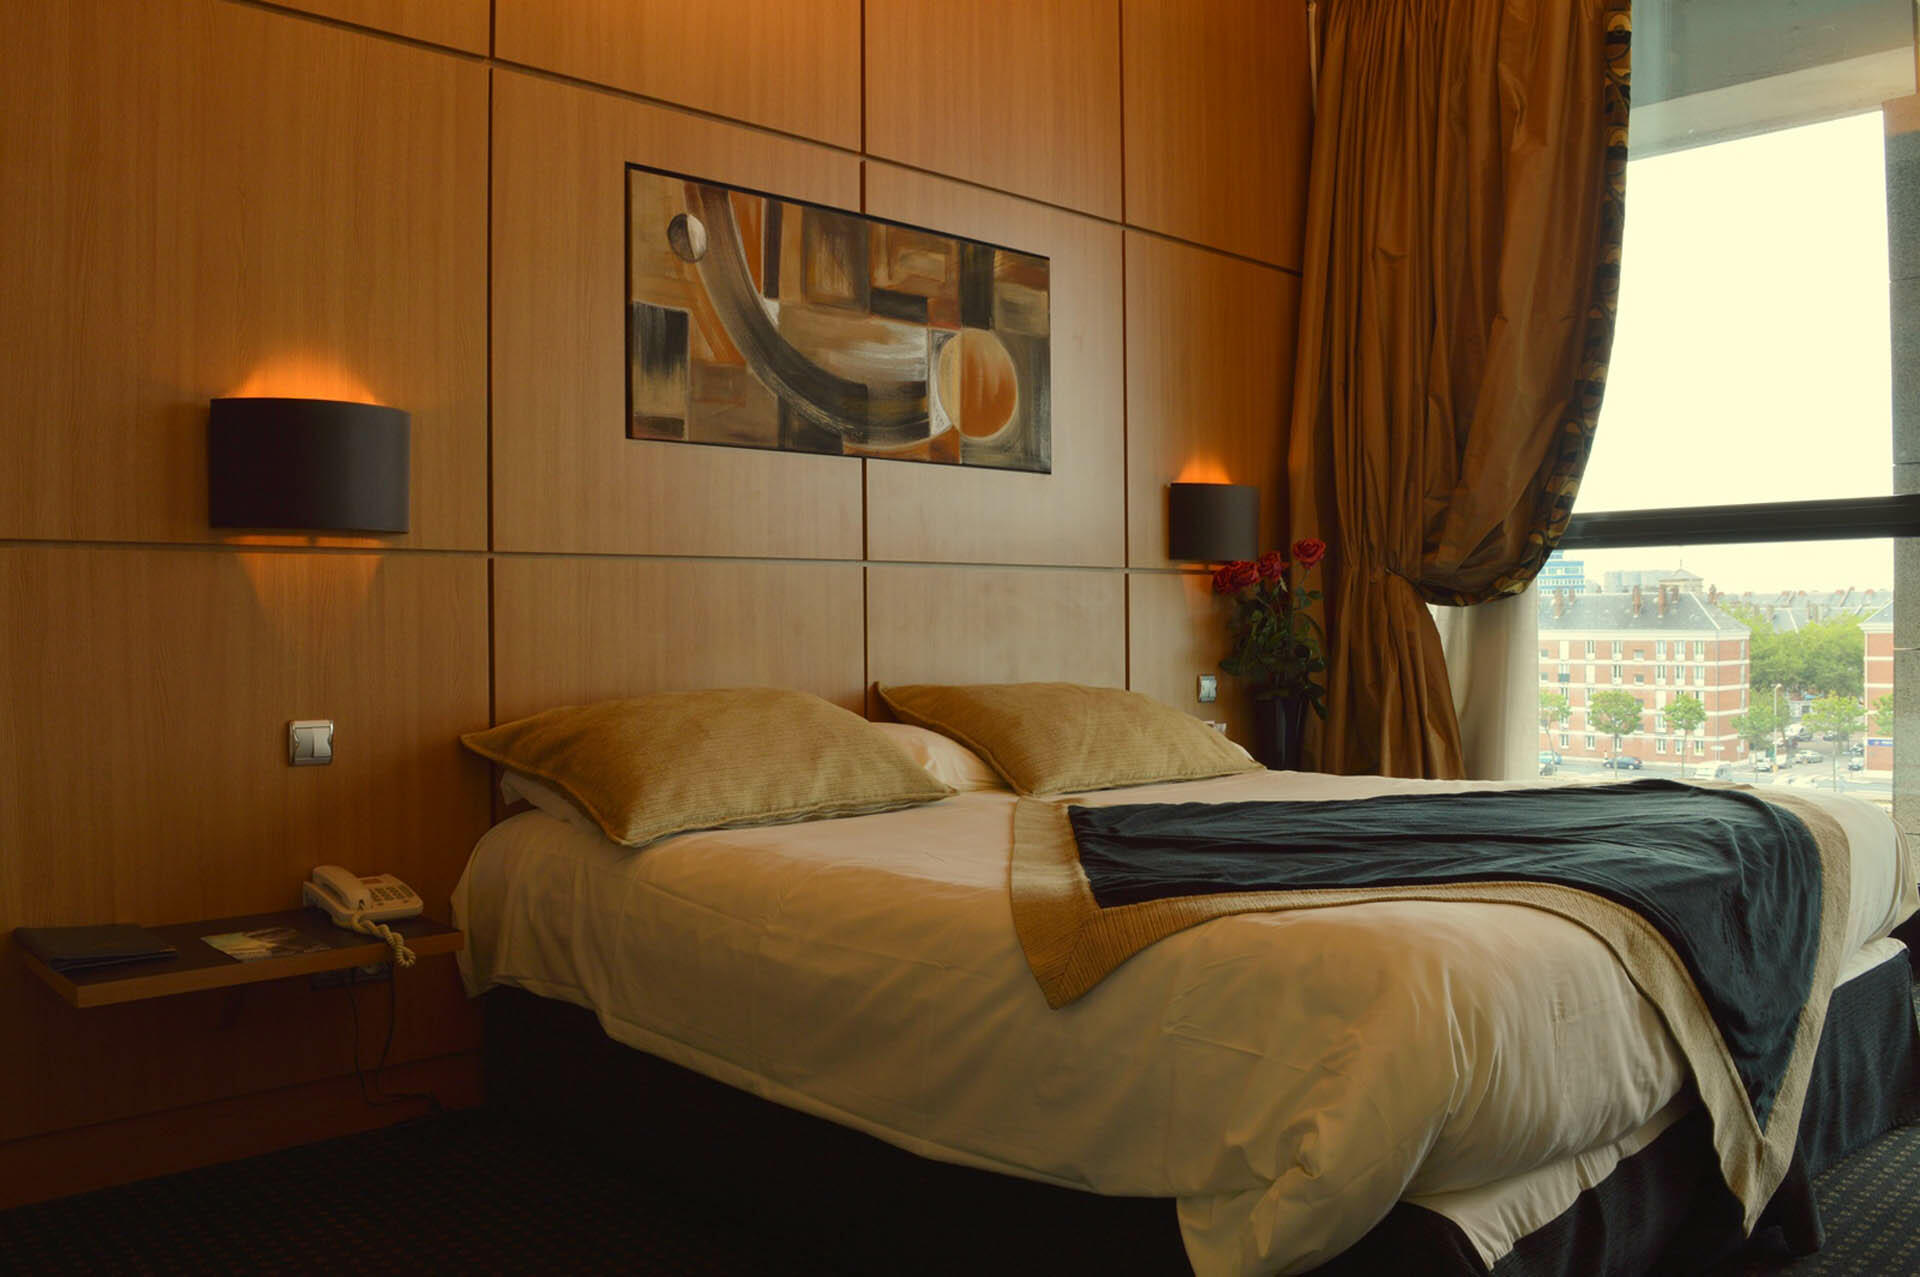 Comfort room at Hotel du Pasino in Le Havre, France